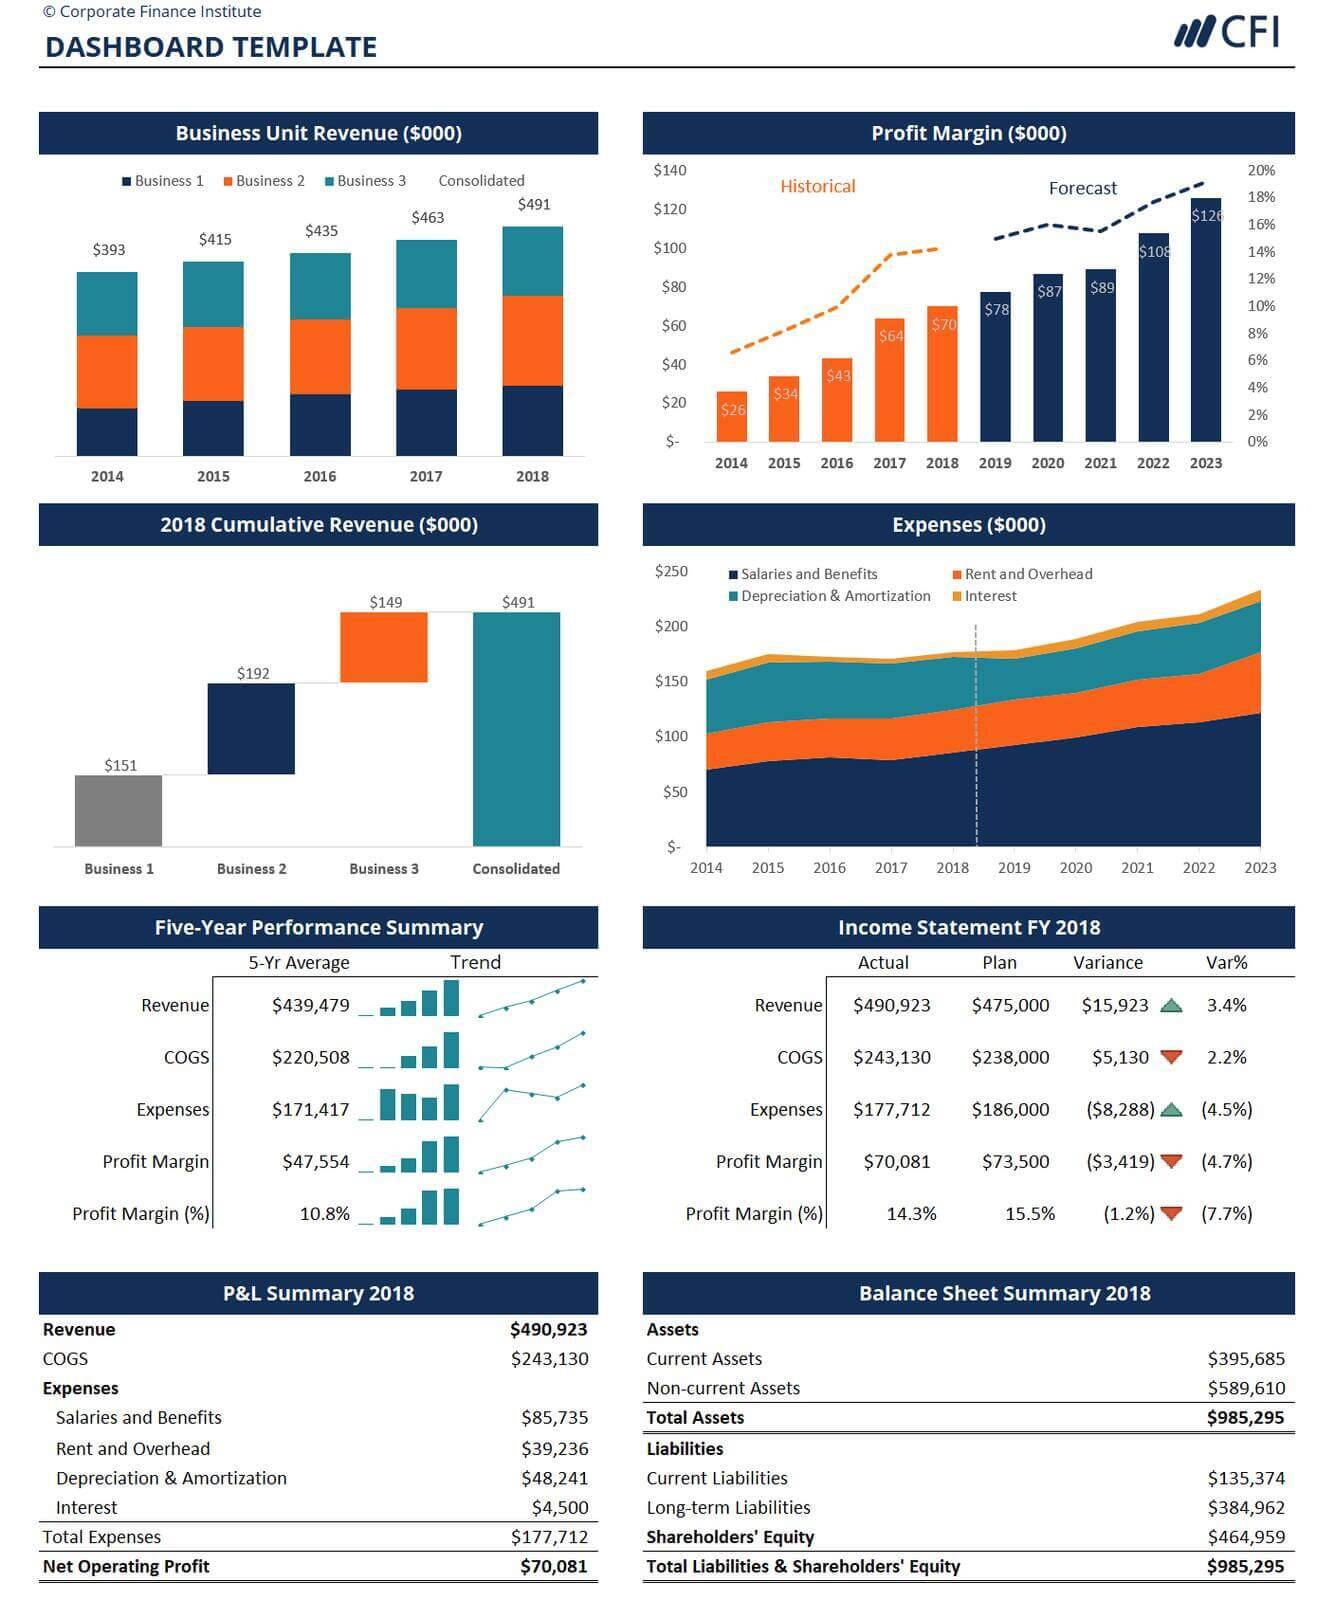 excel dashboard and Data Visualization templates